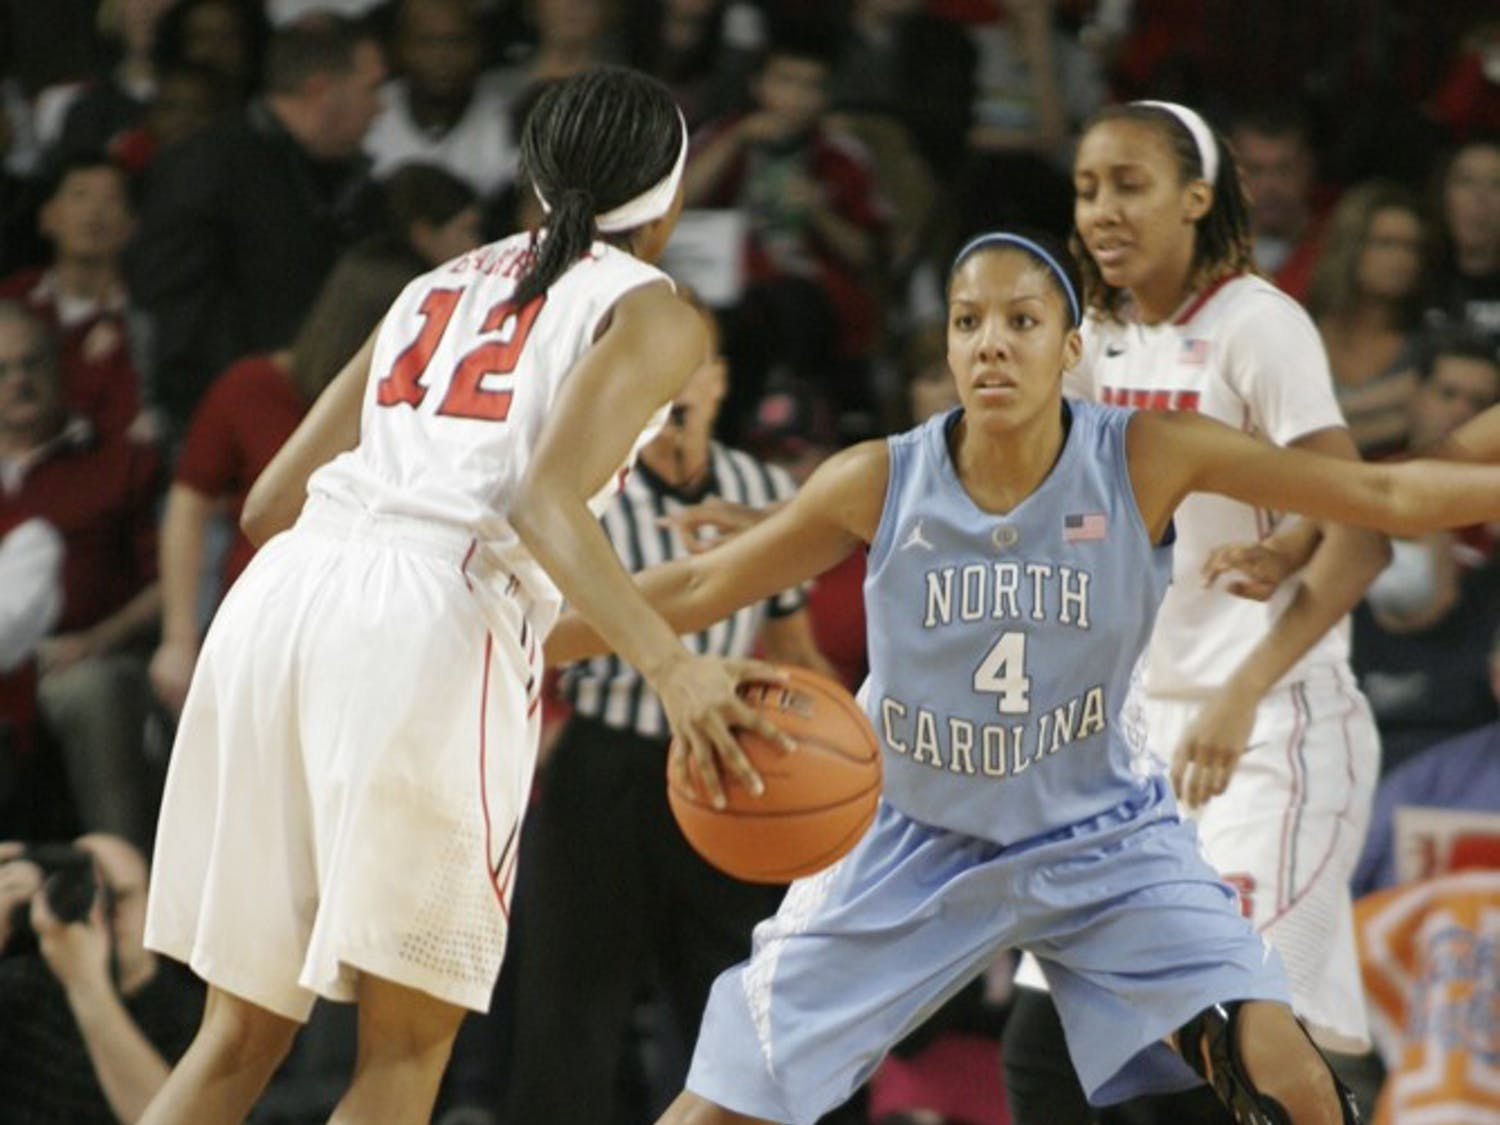 Womens basketball against NC State